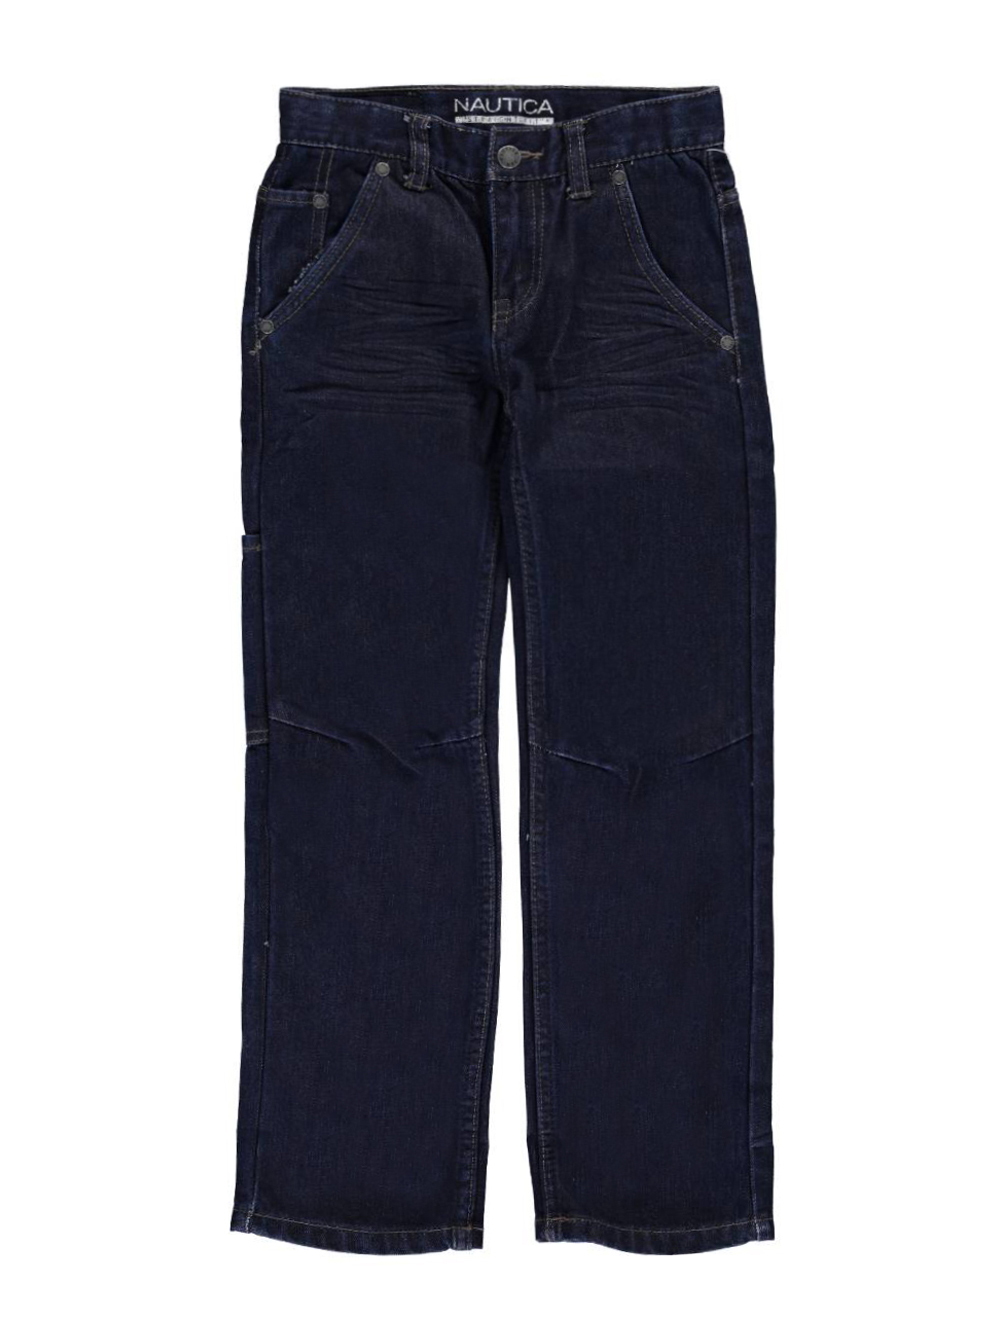 Image of Nautica Little Boys McGuinness Straight Fit Jeans Sizes 4  7